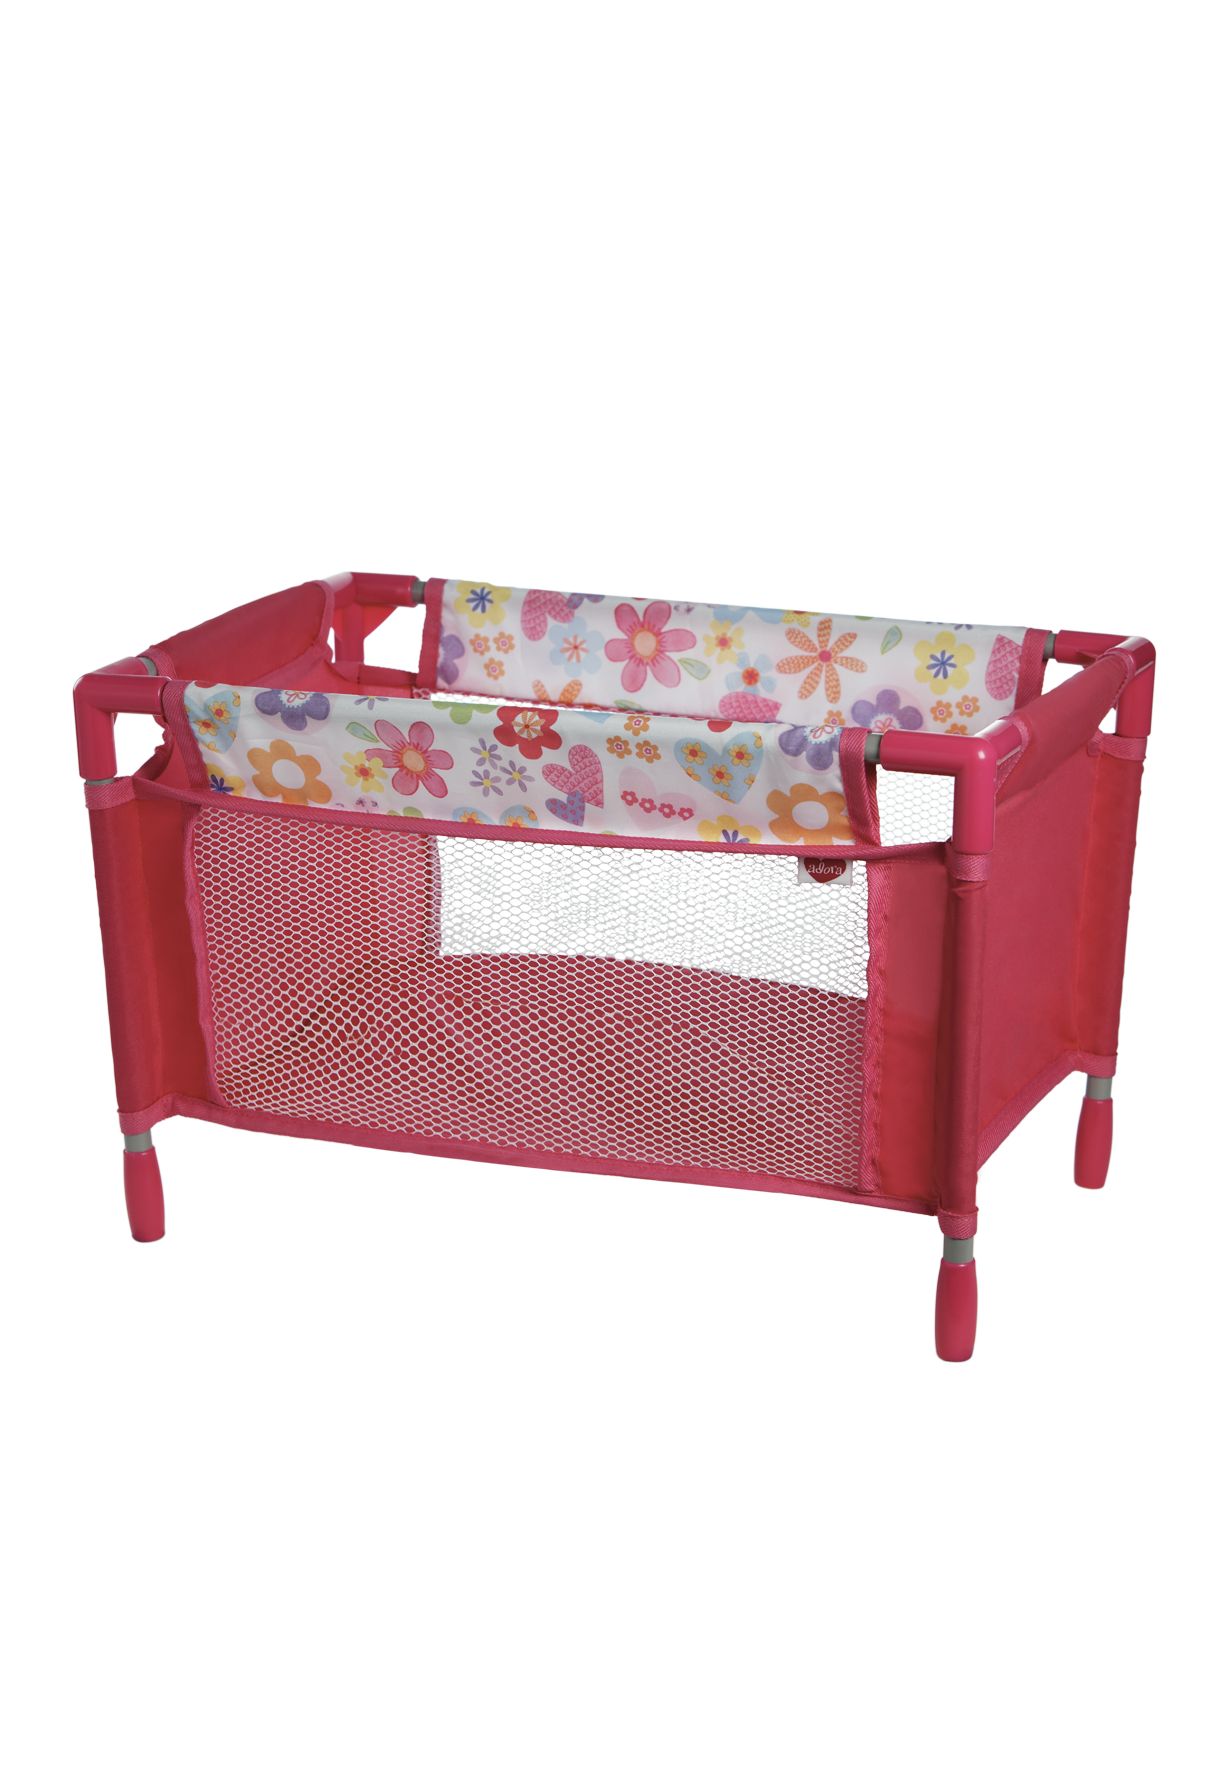 Crib drawing diy baby doll. Ideas wooden bassinet cribs